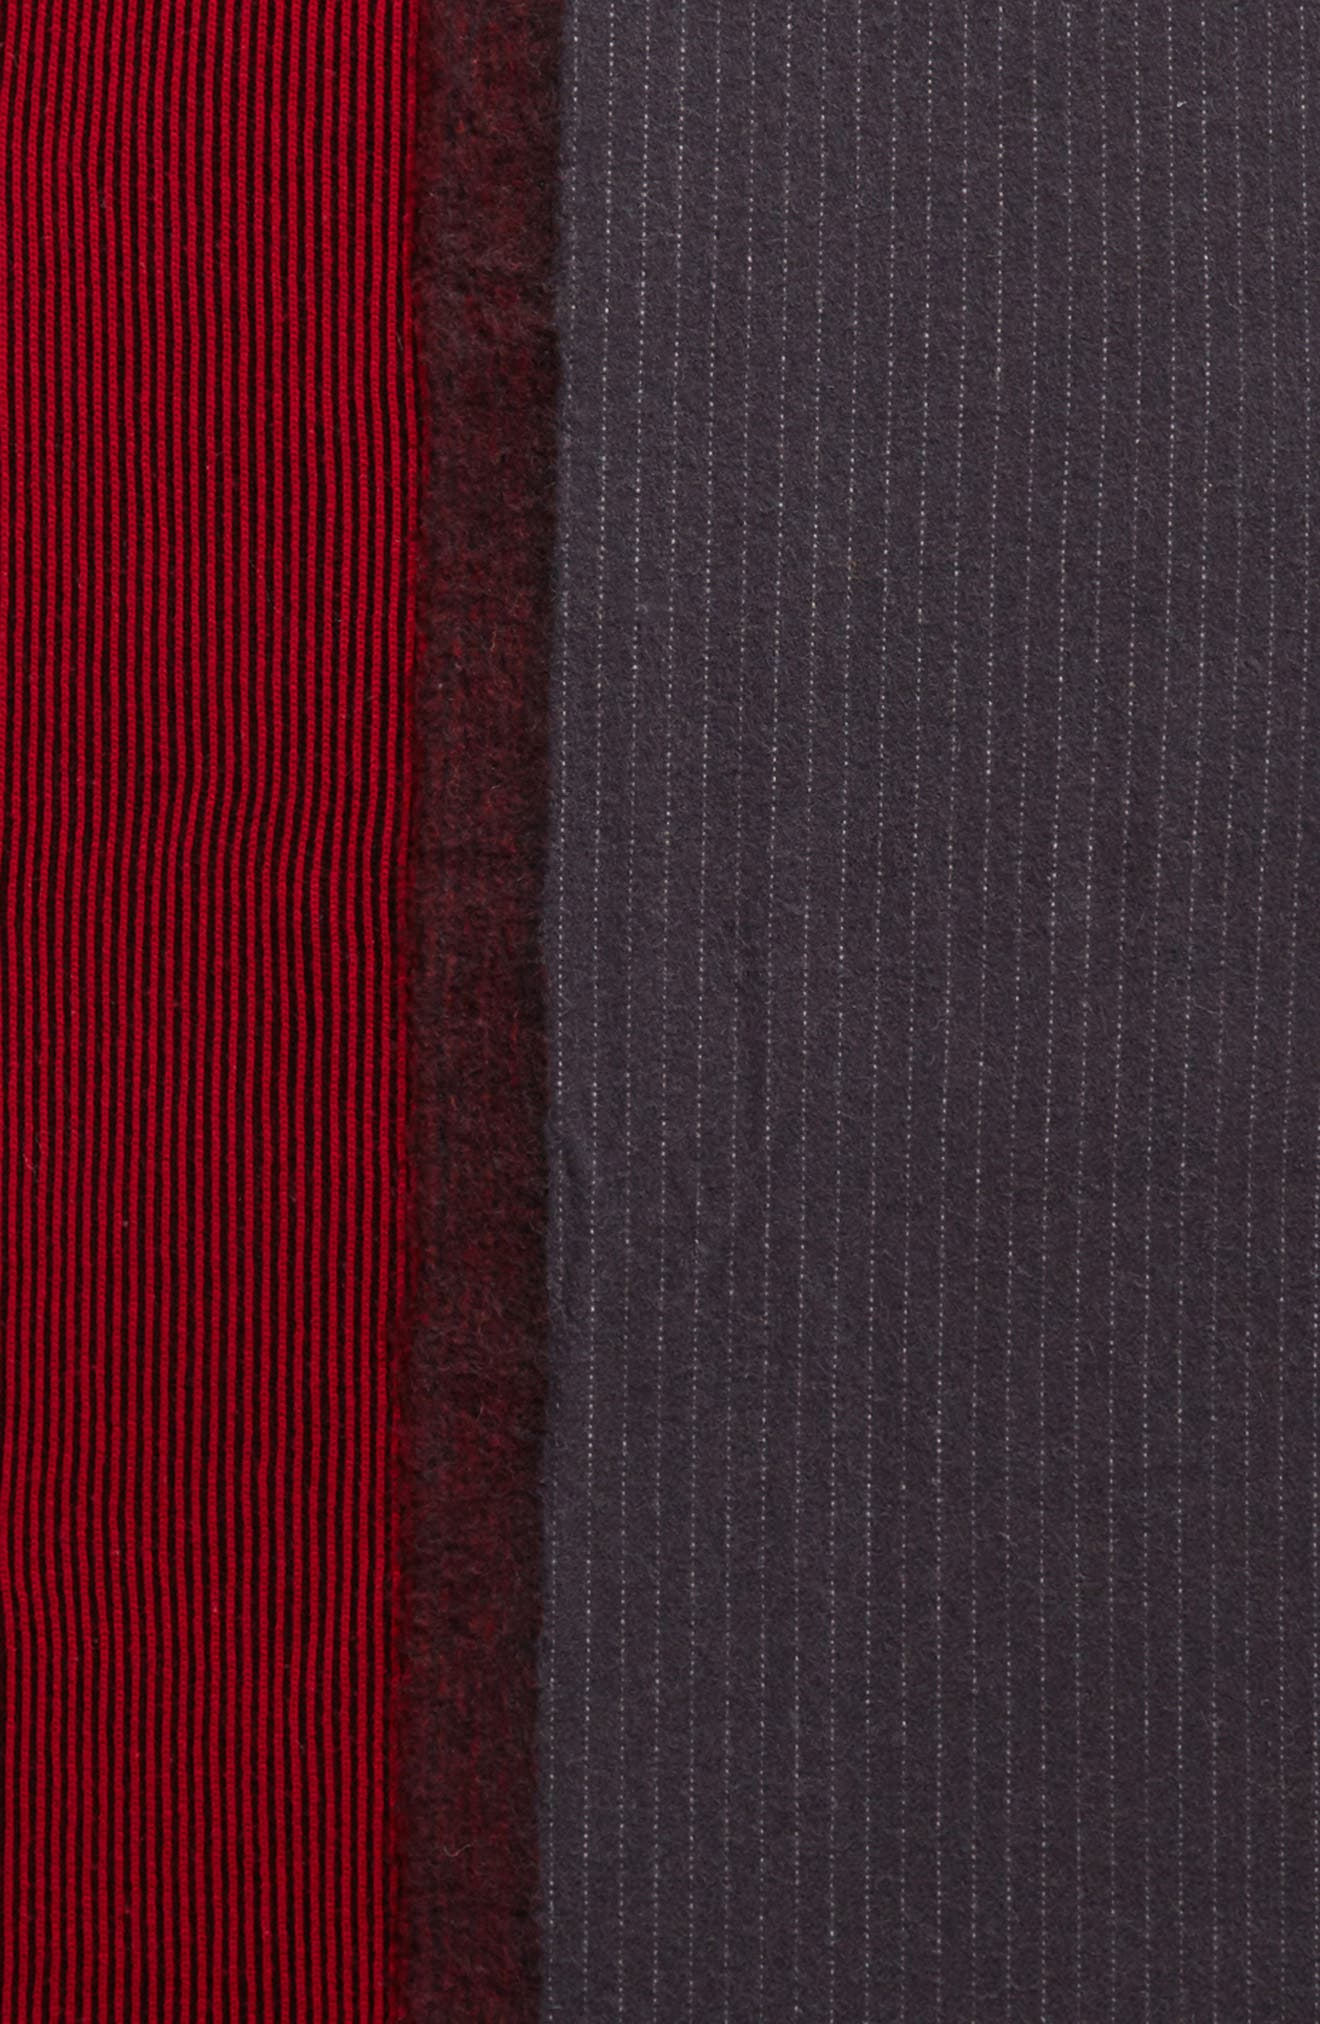 Pinstripe Wool & Cashmere Scarf,                             Alternate thumbnail 4, color,                             400